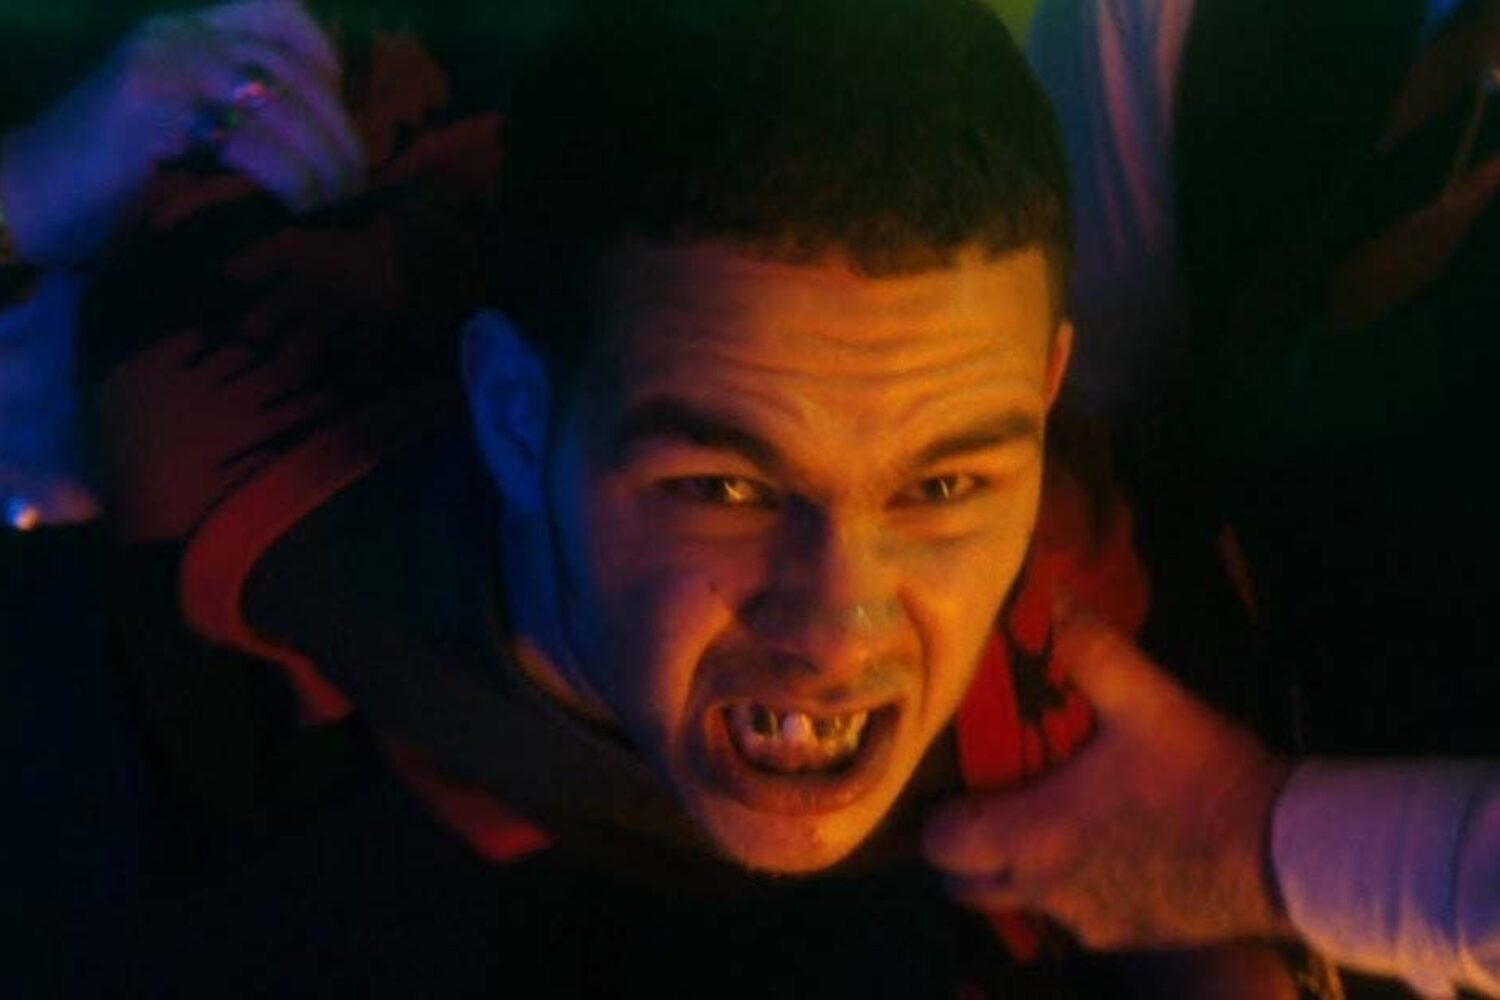 slowthai shares chaotic 'Doorman' video